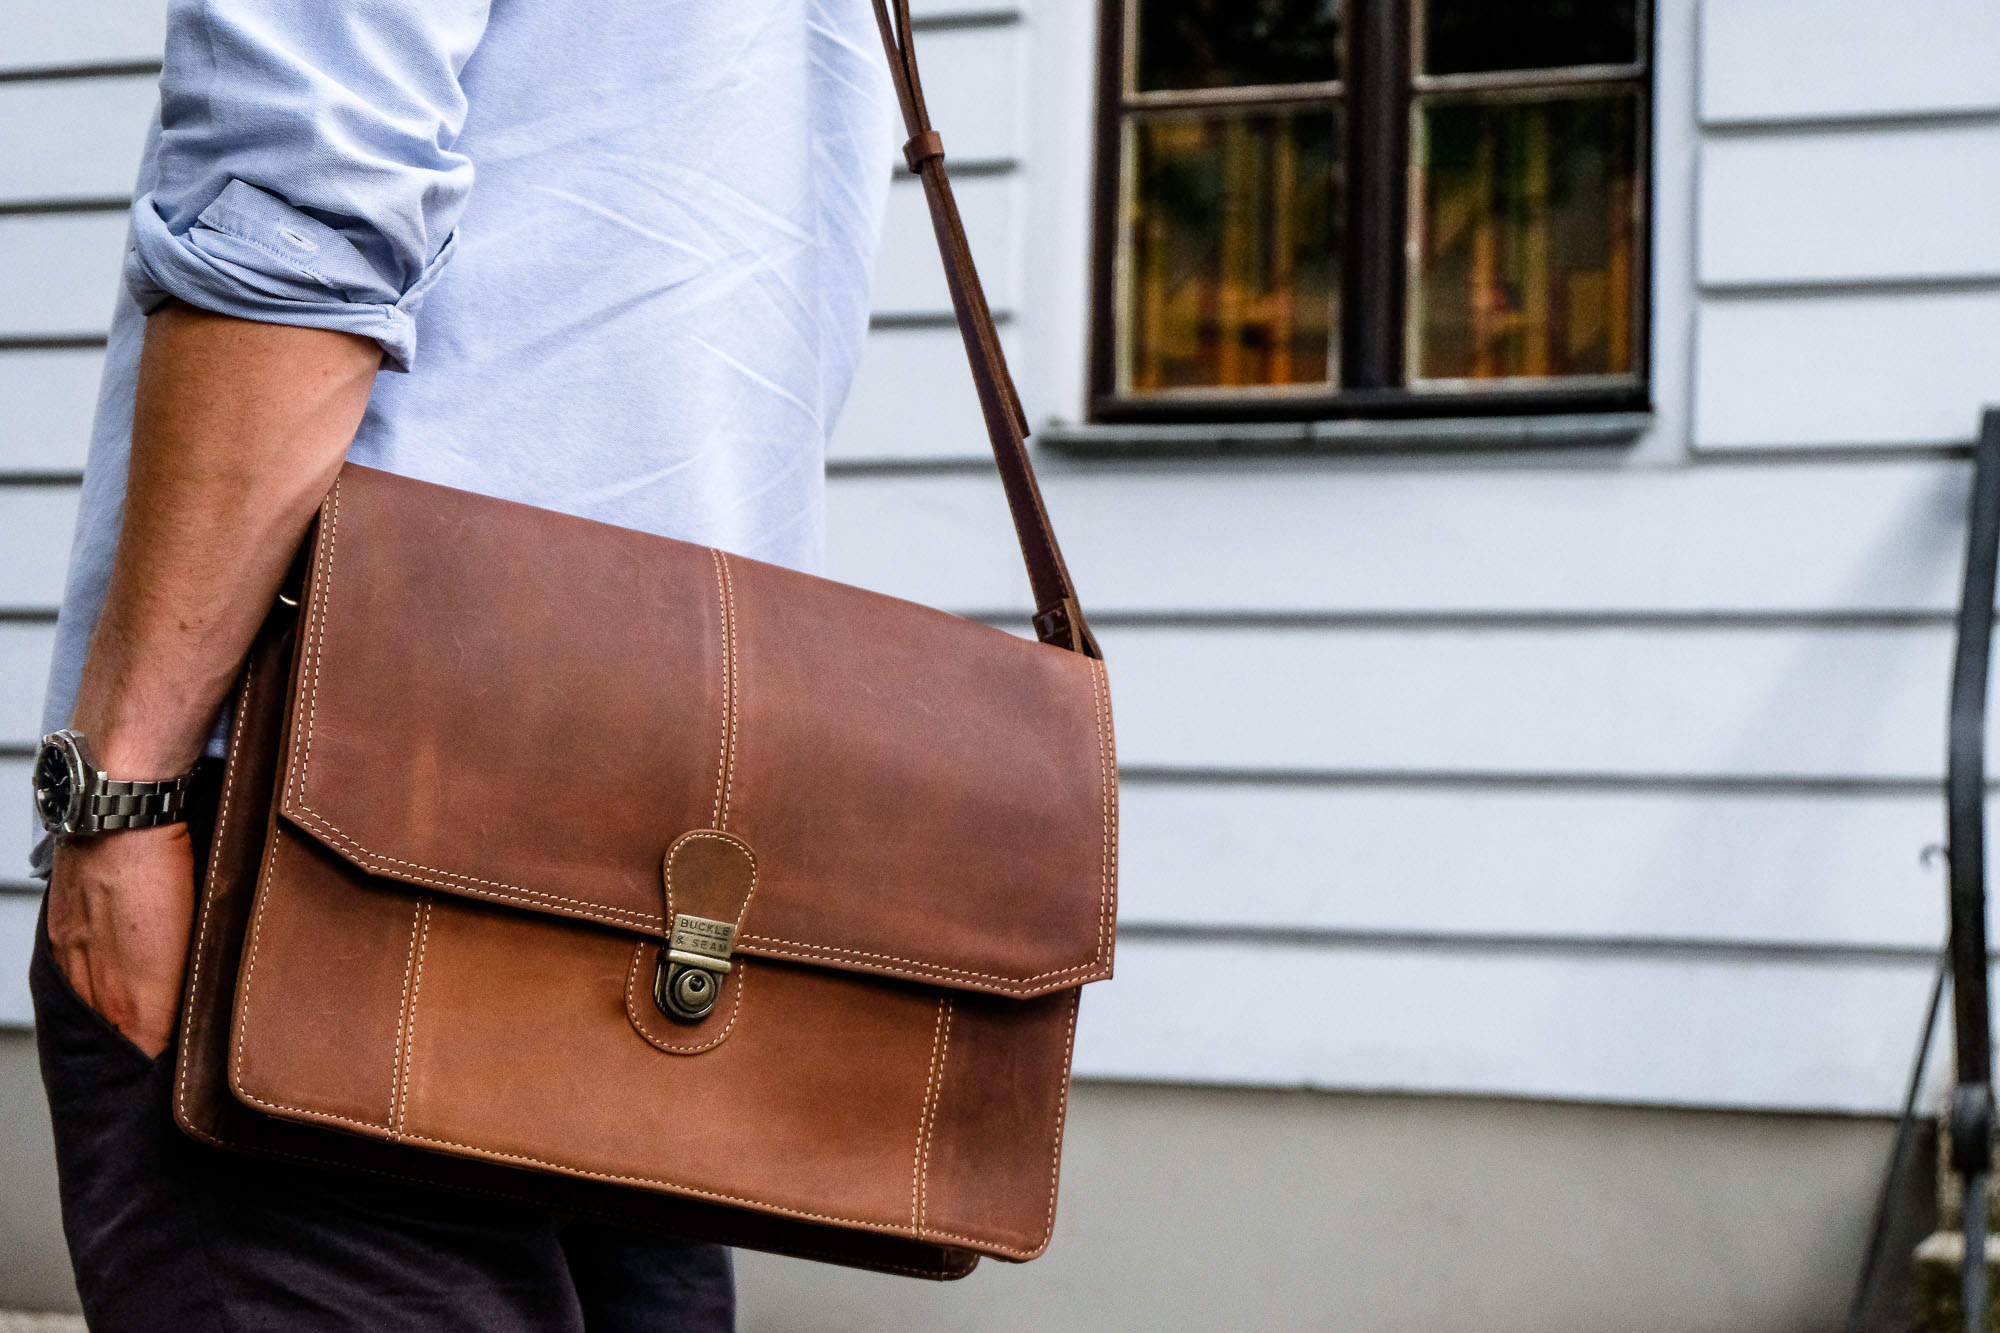 This luxury leather bag startup is working on a better future for Pakistan